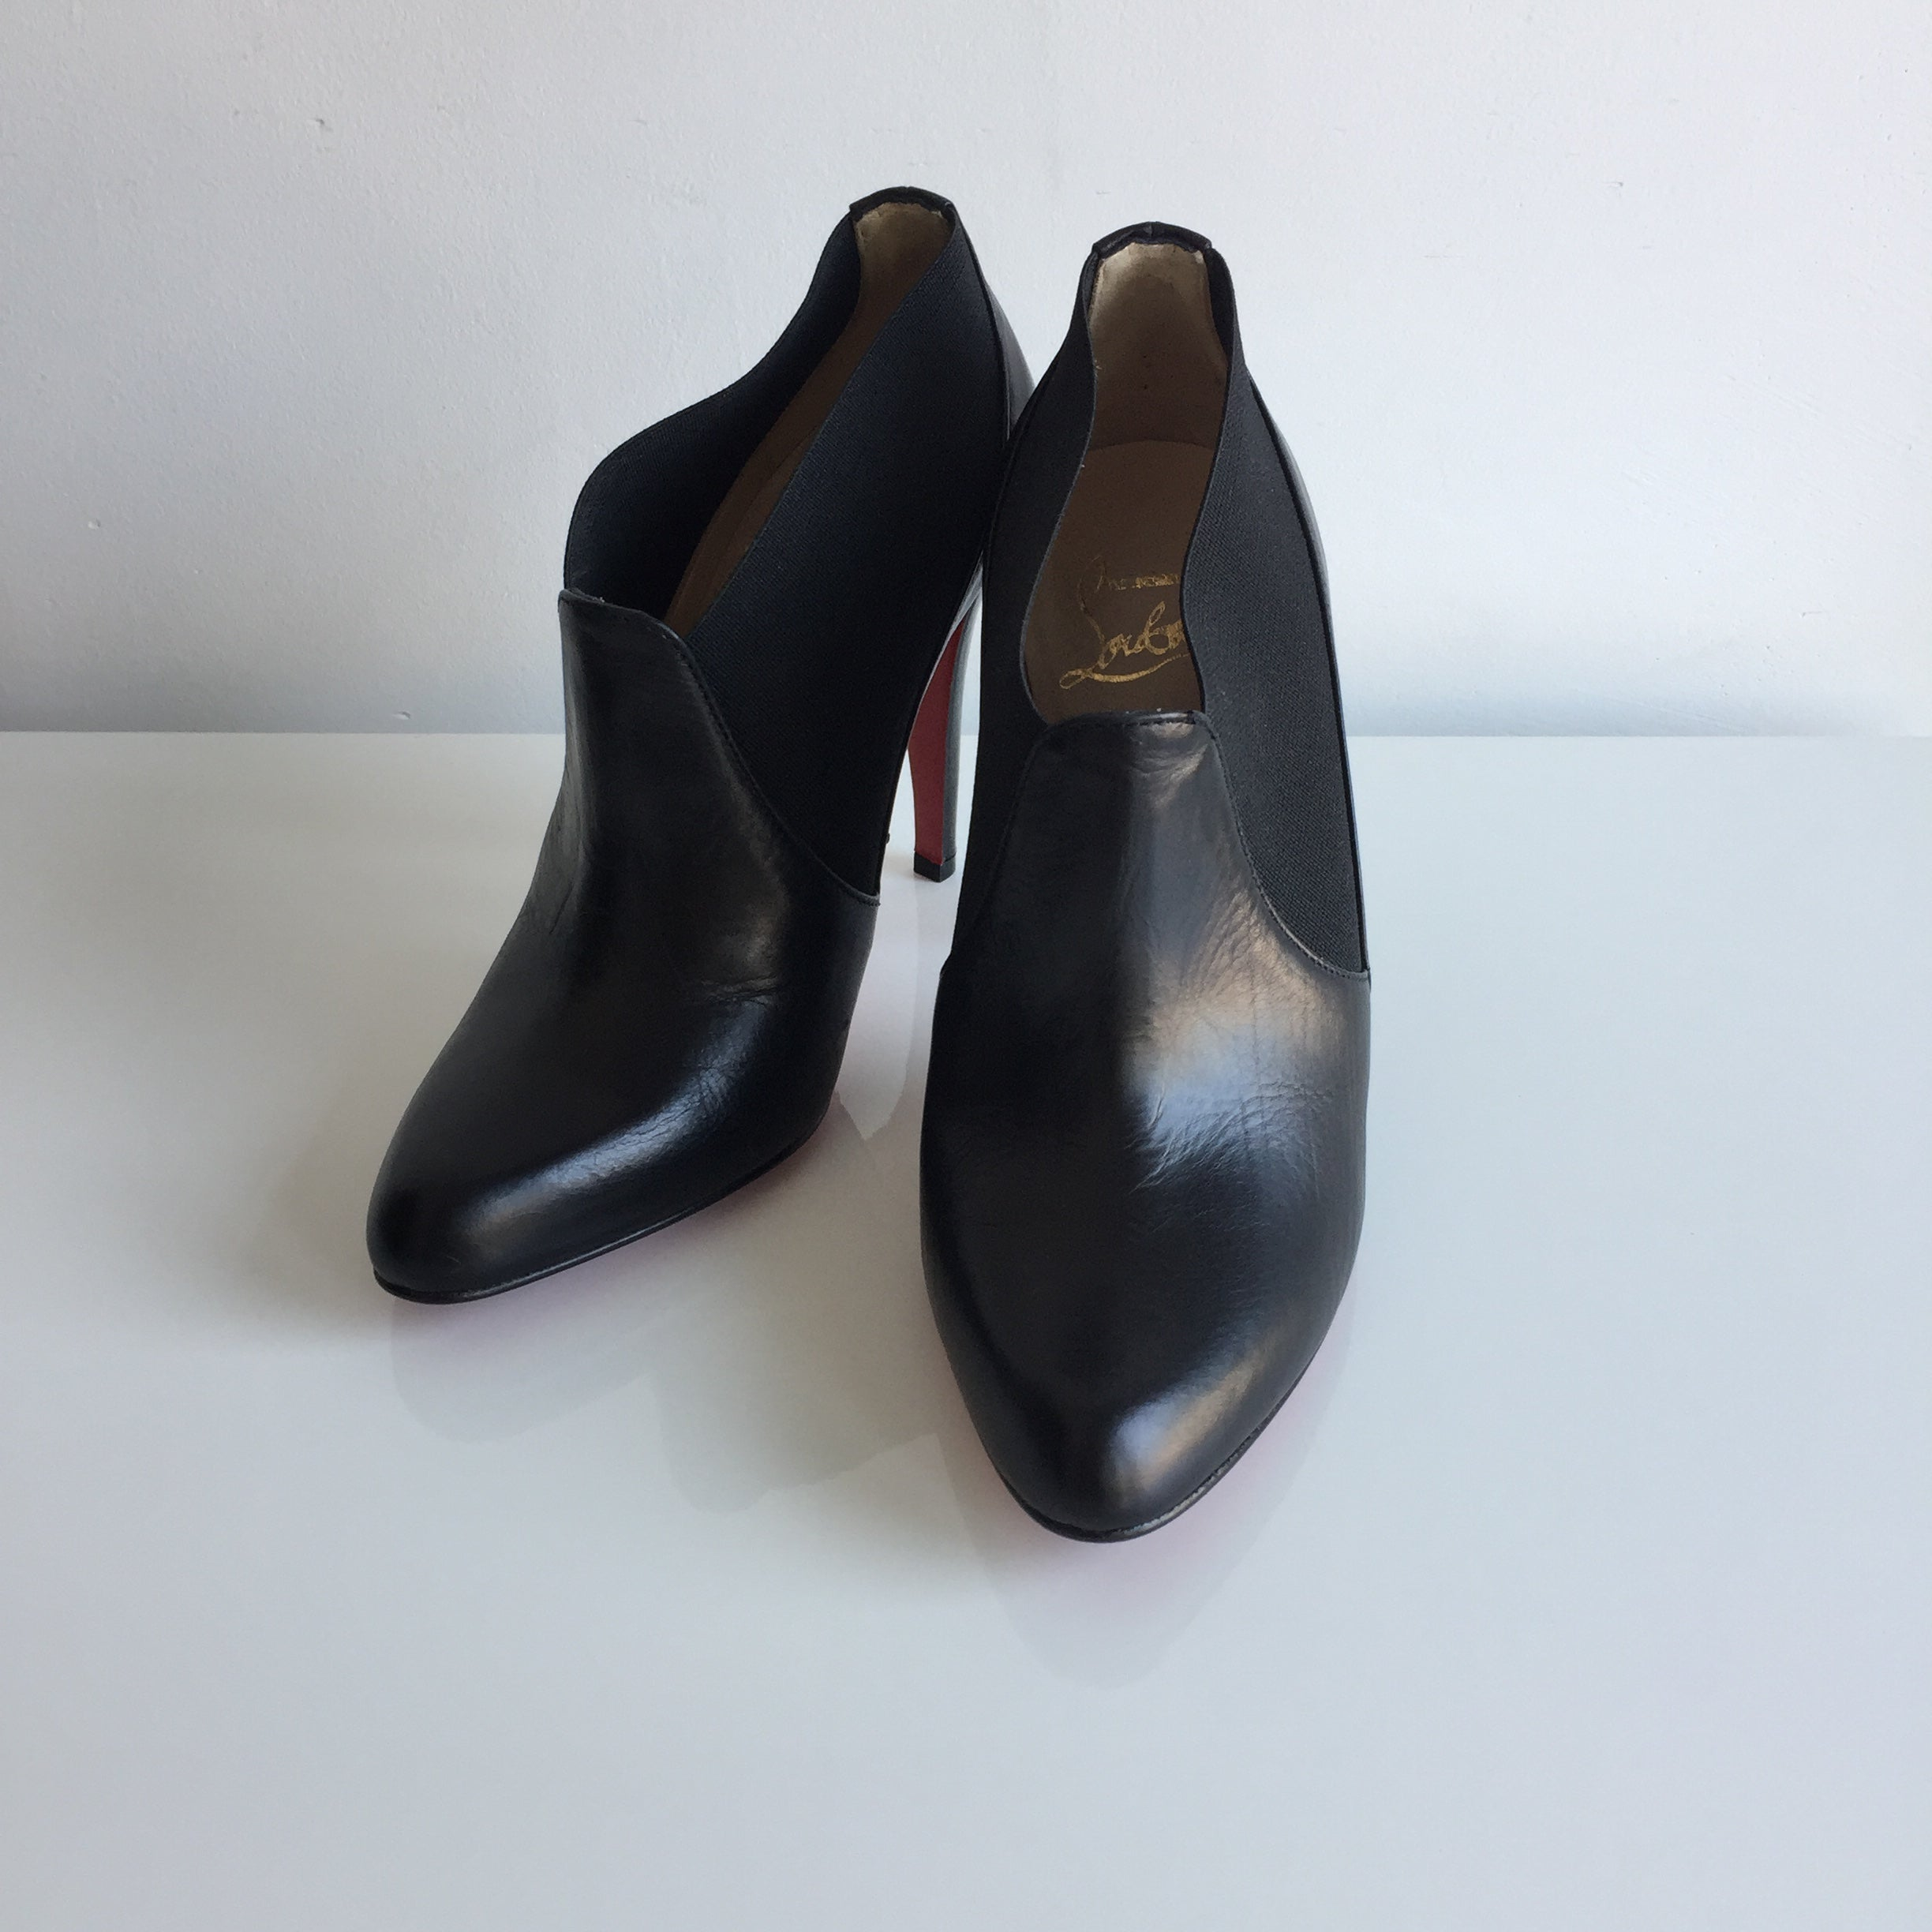 Authentic CHRISTIAN LOUBOUTIN Booties Size 6